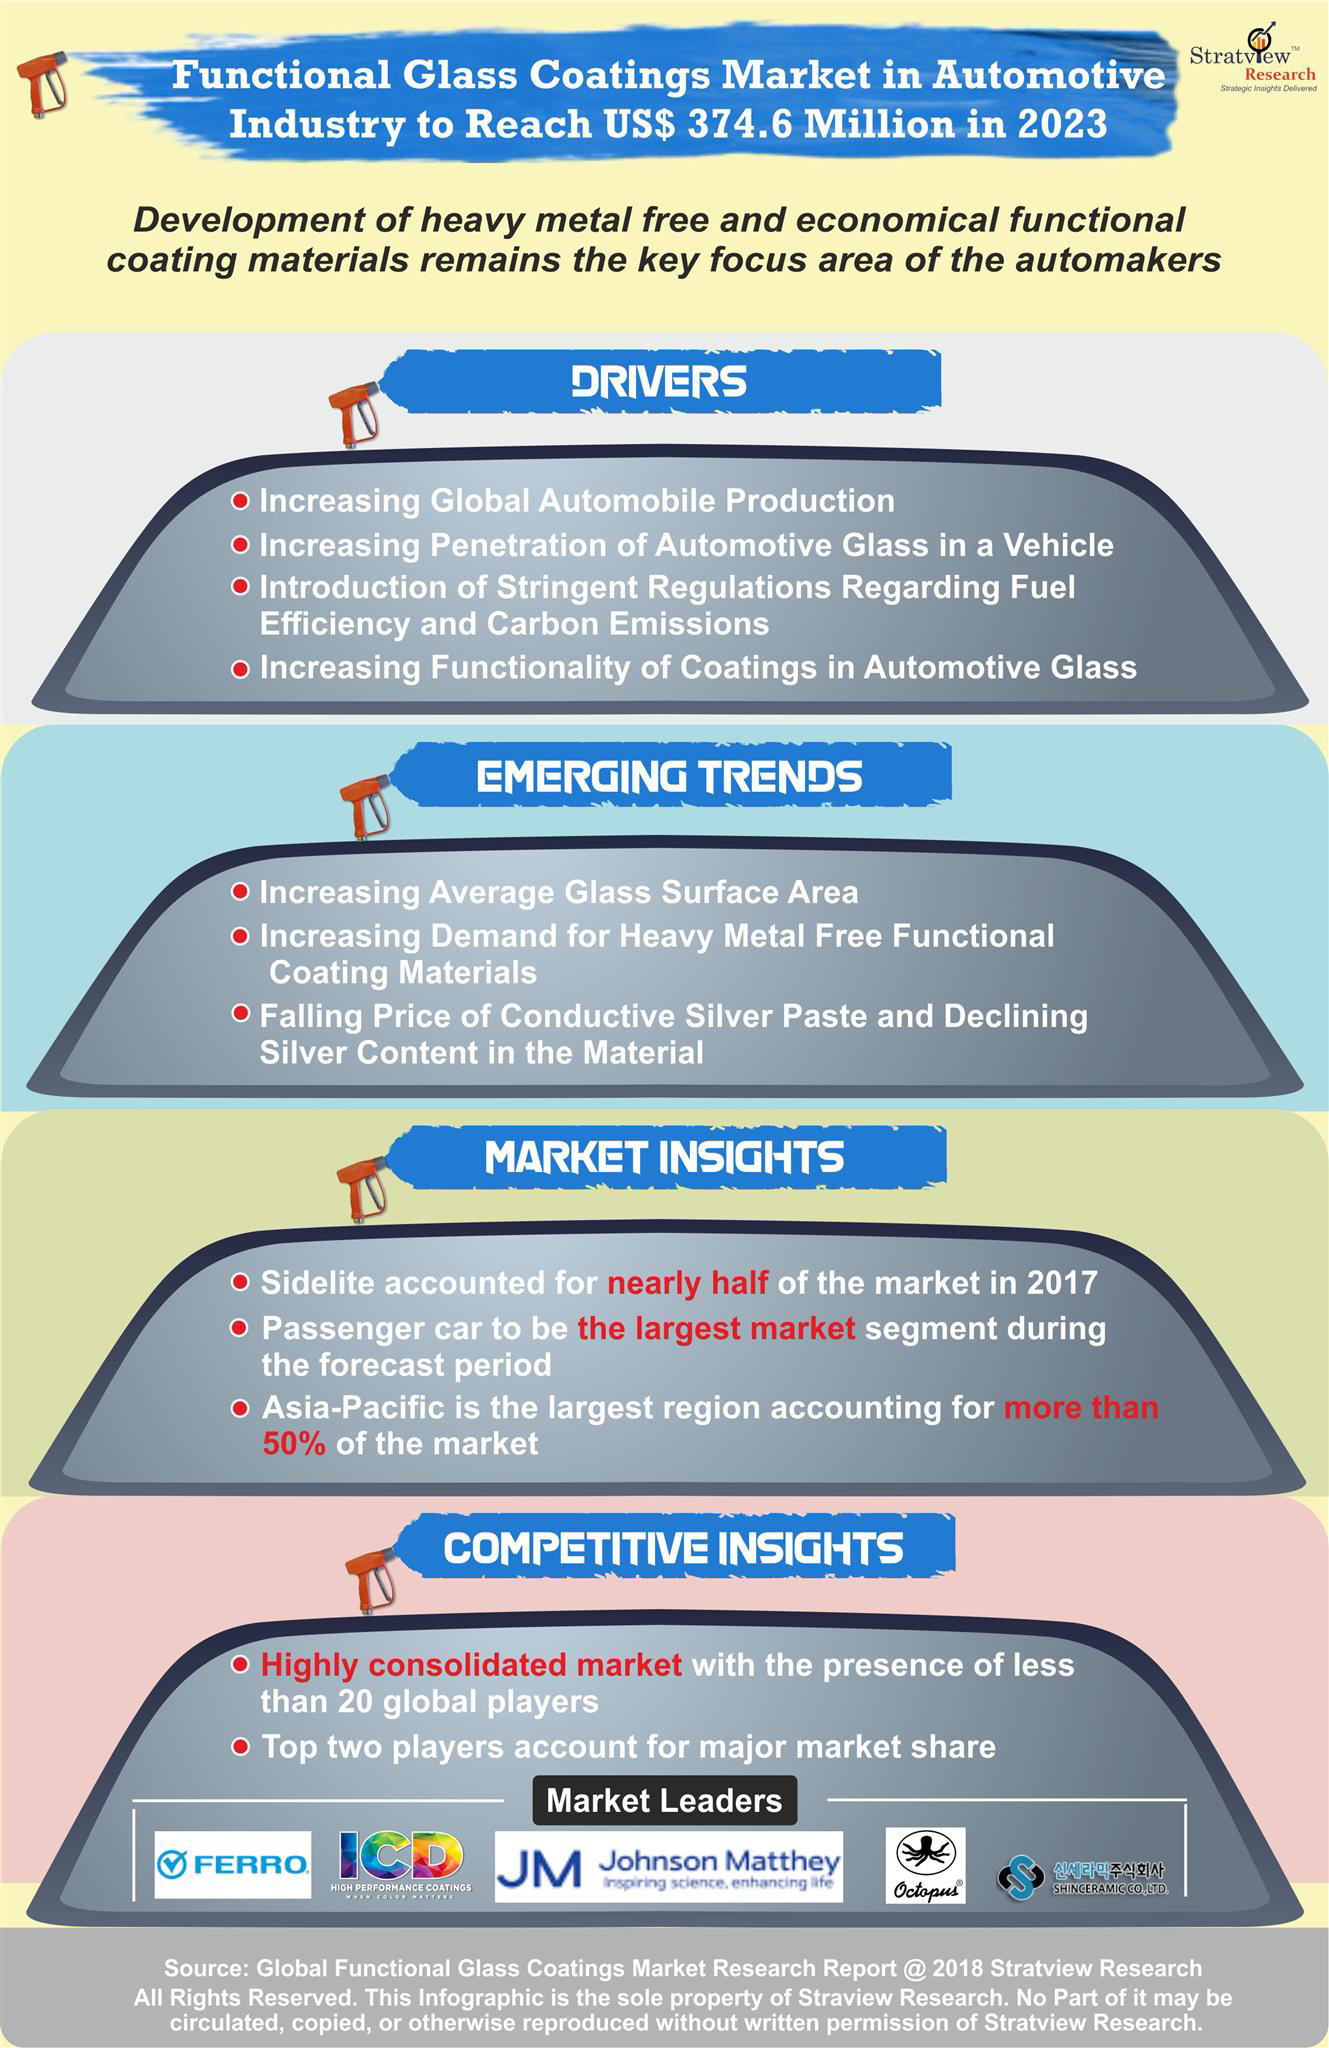 Functional Glass Coatings Market in Automotive Industry